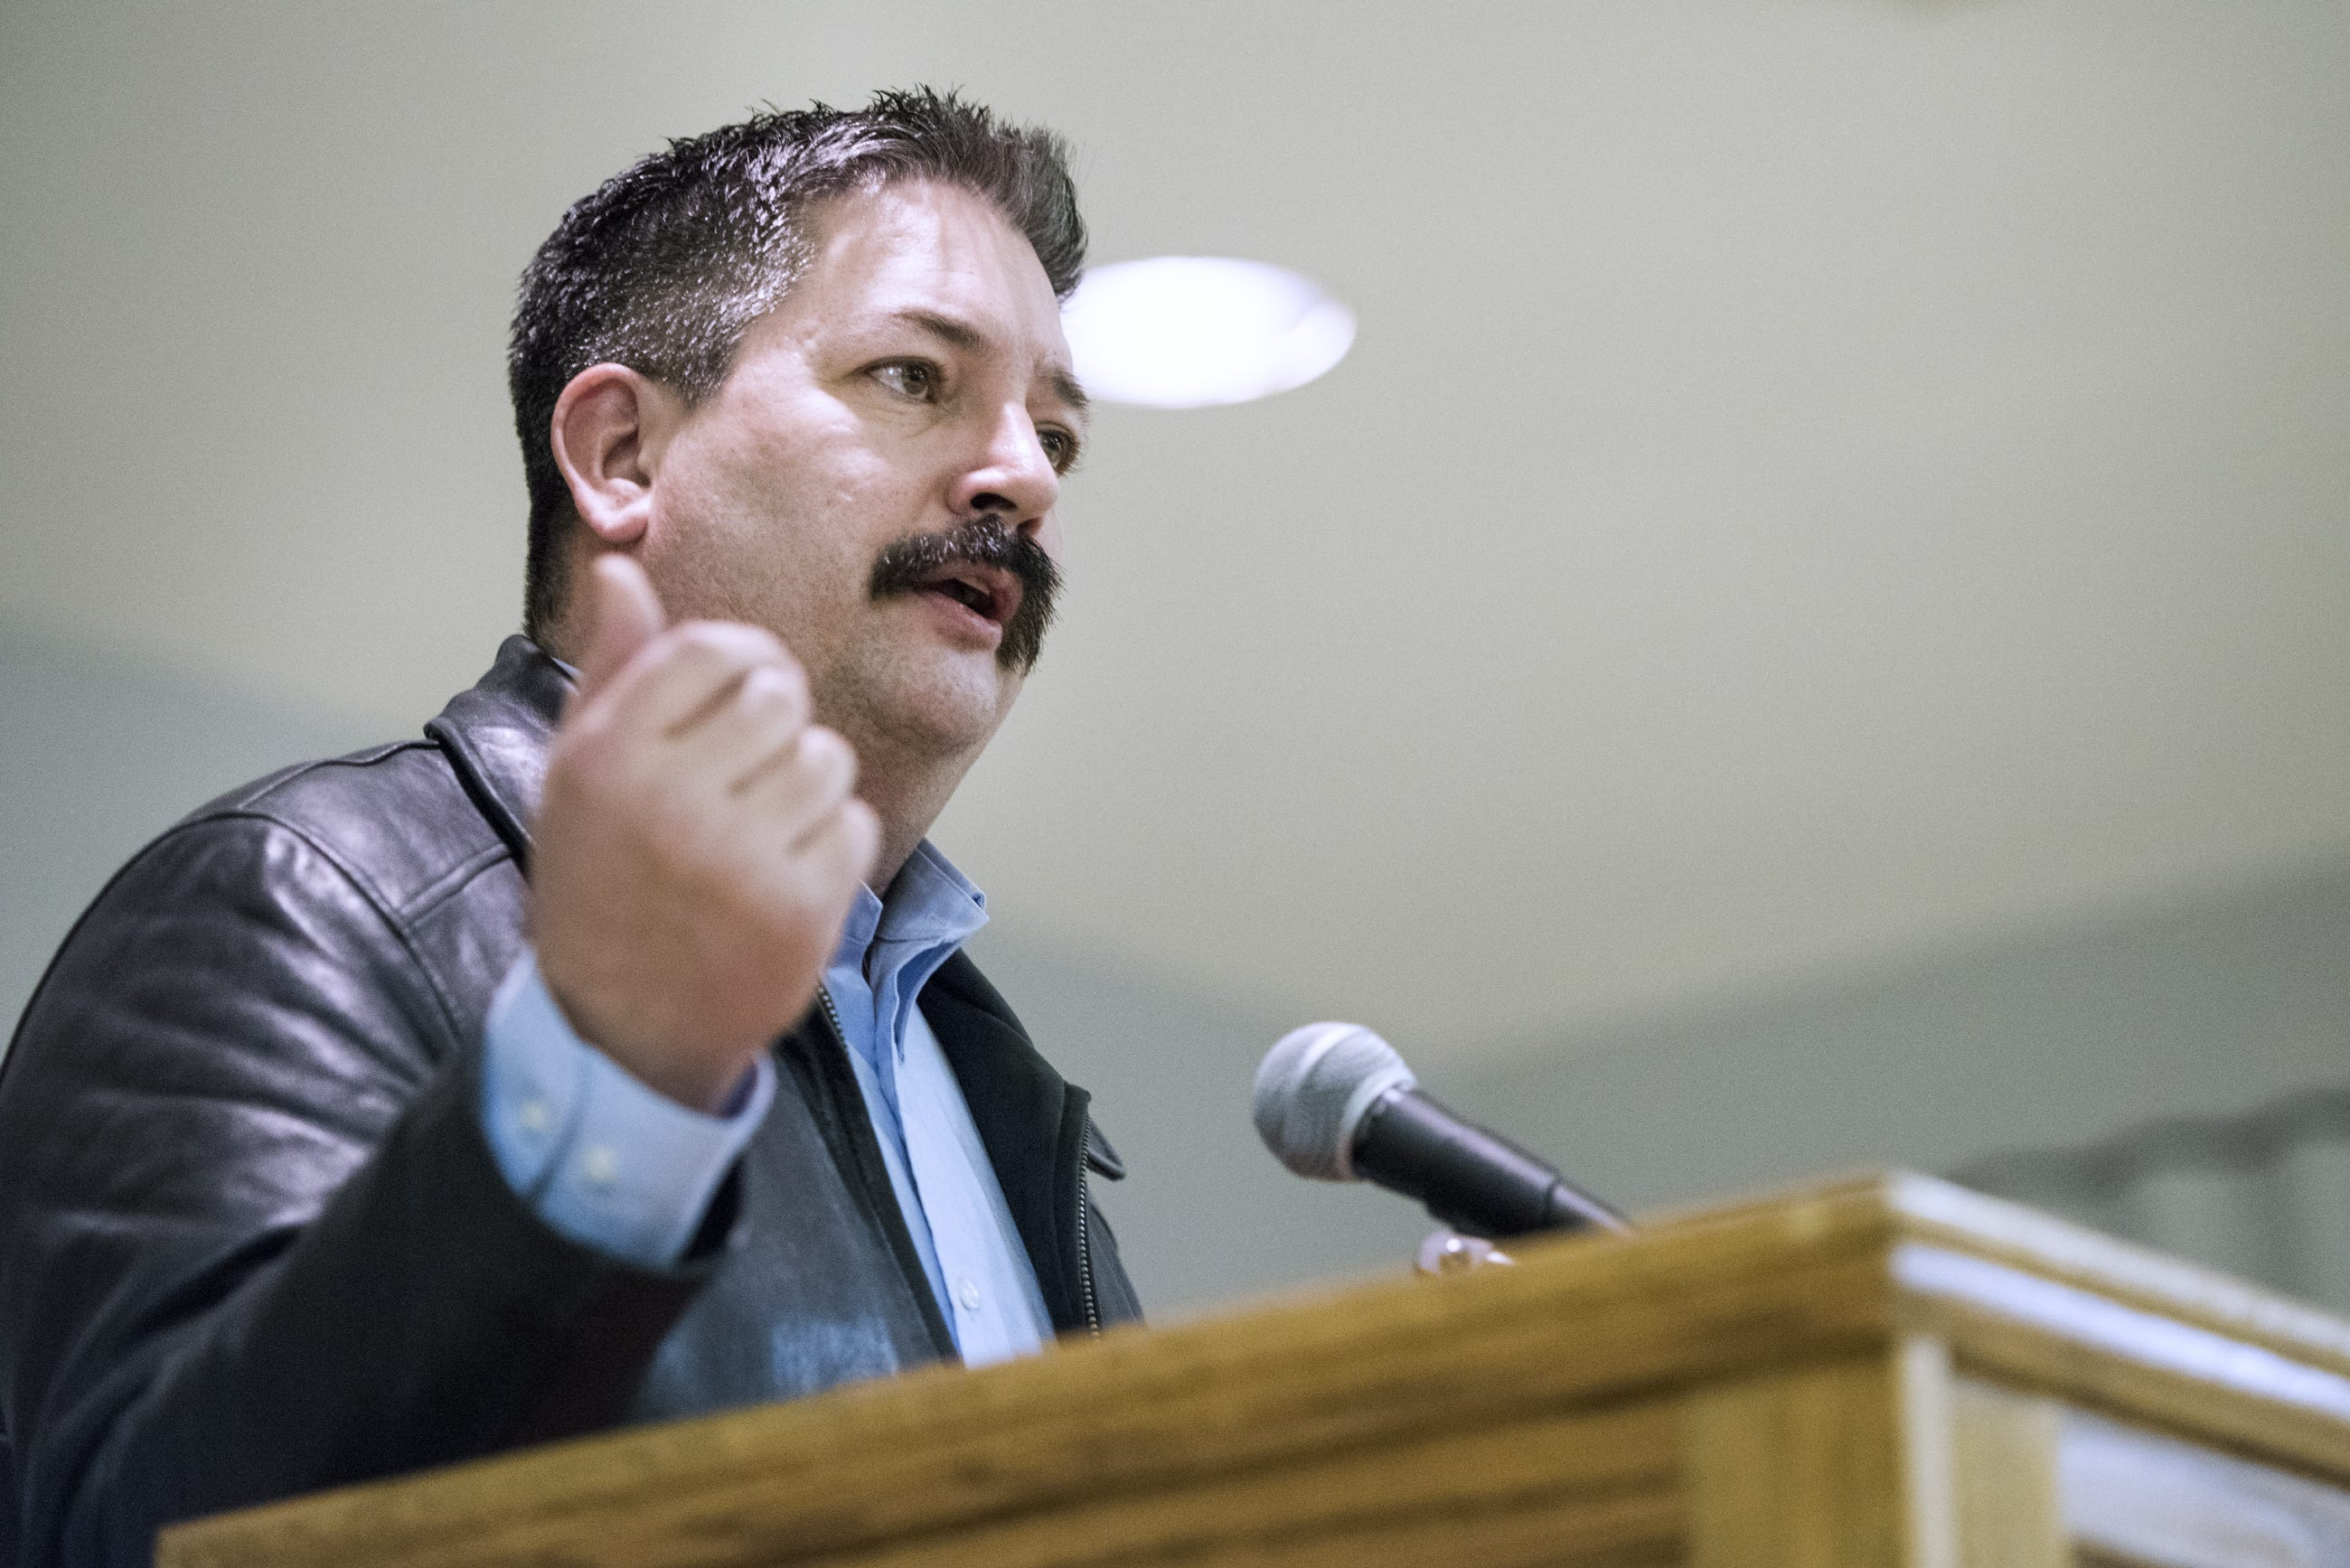 Randy Bryce has fundraising advantage over fellow Democrat Cathy Myers | Milwaukee Journal Sentinel